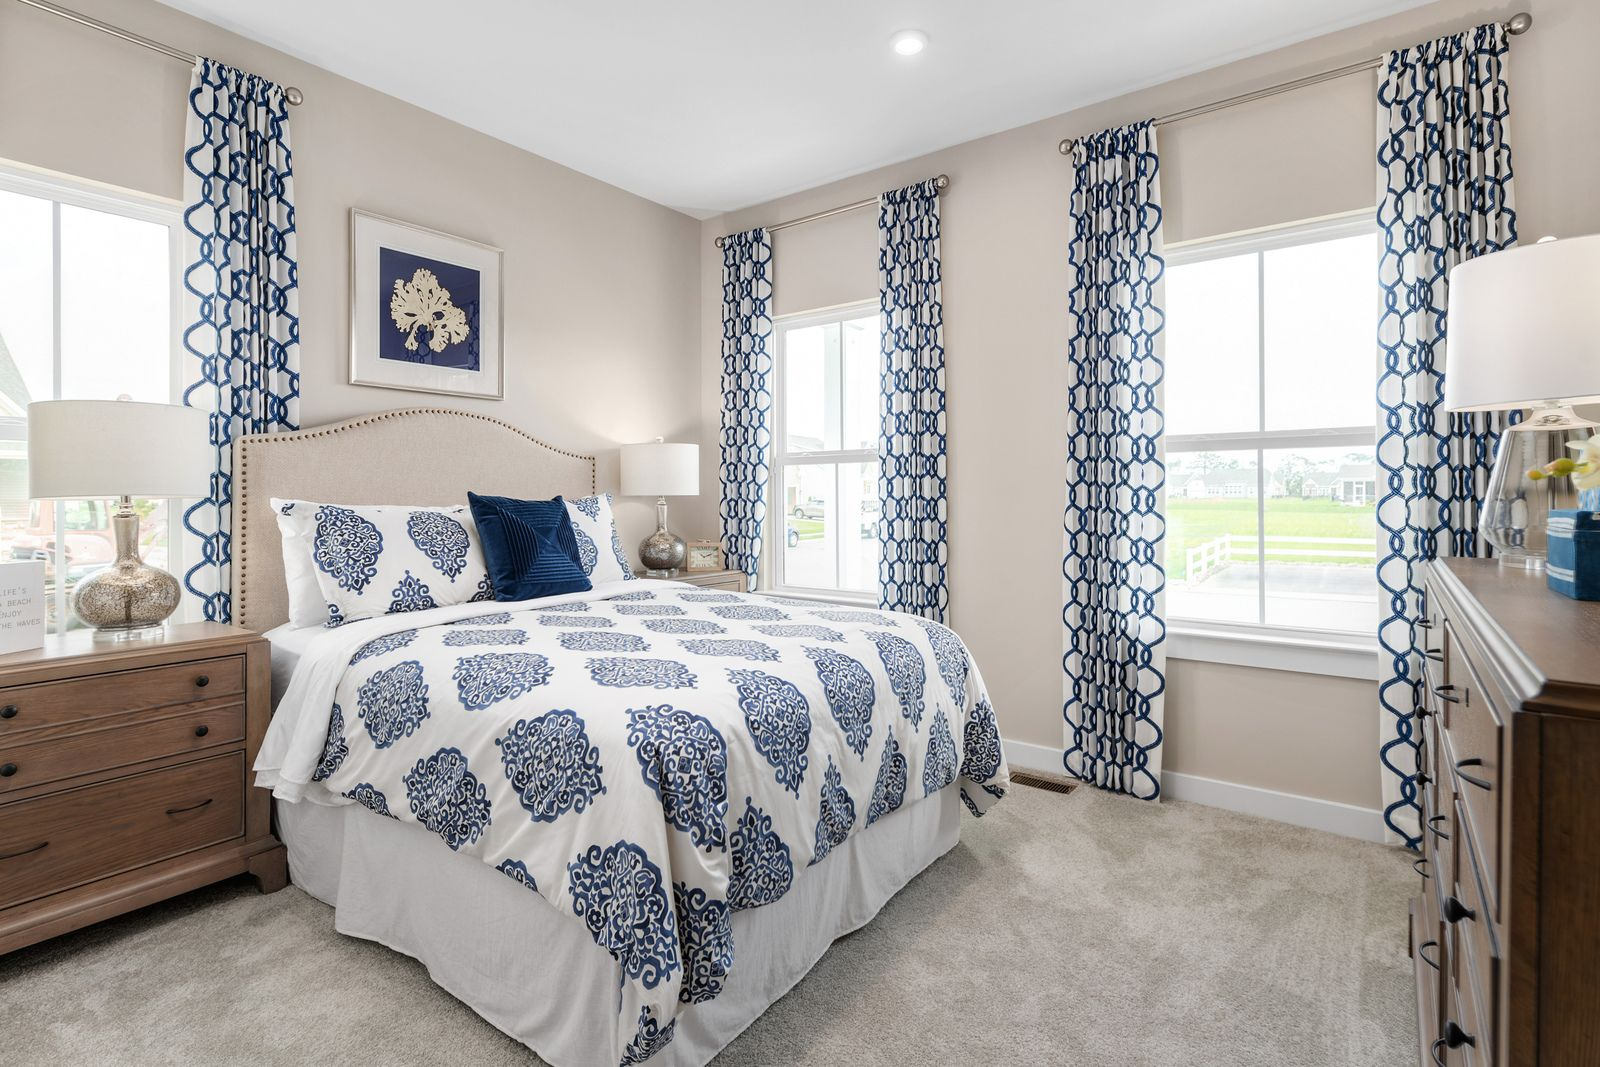 Bedroom featured in the Cumberland By Ryan Homes in Baltimore, MD